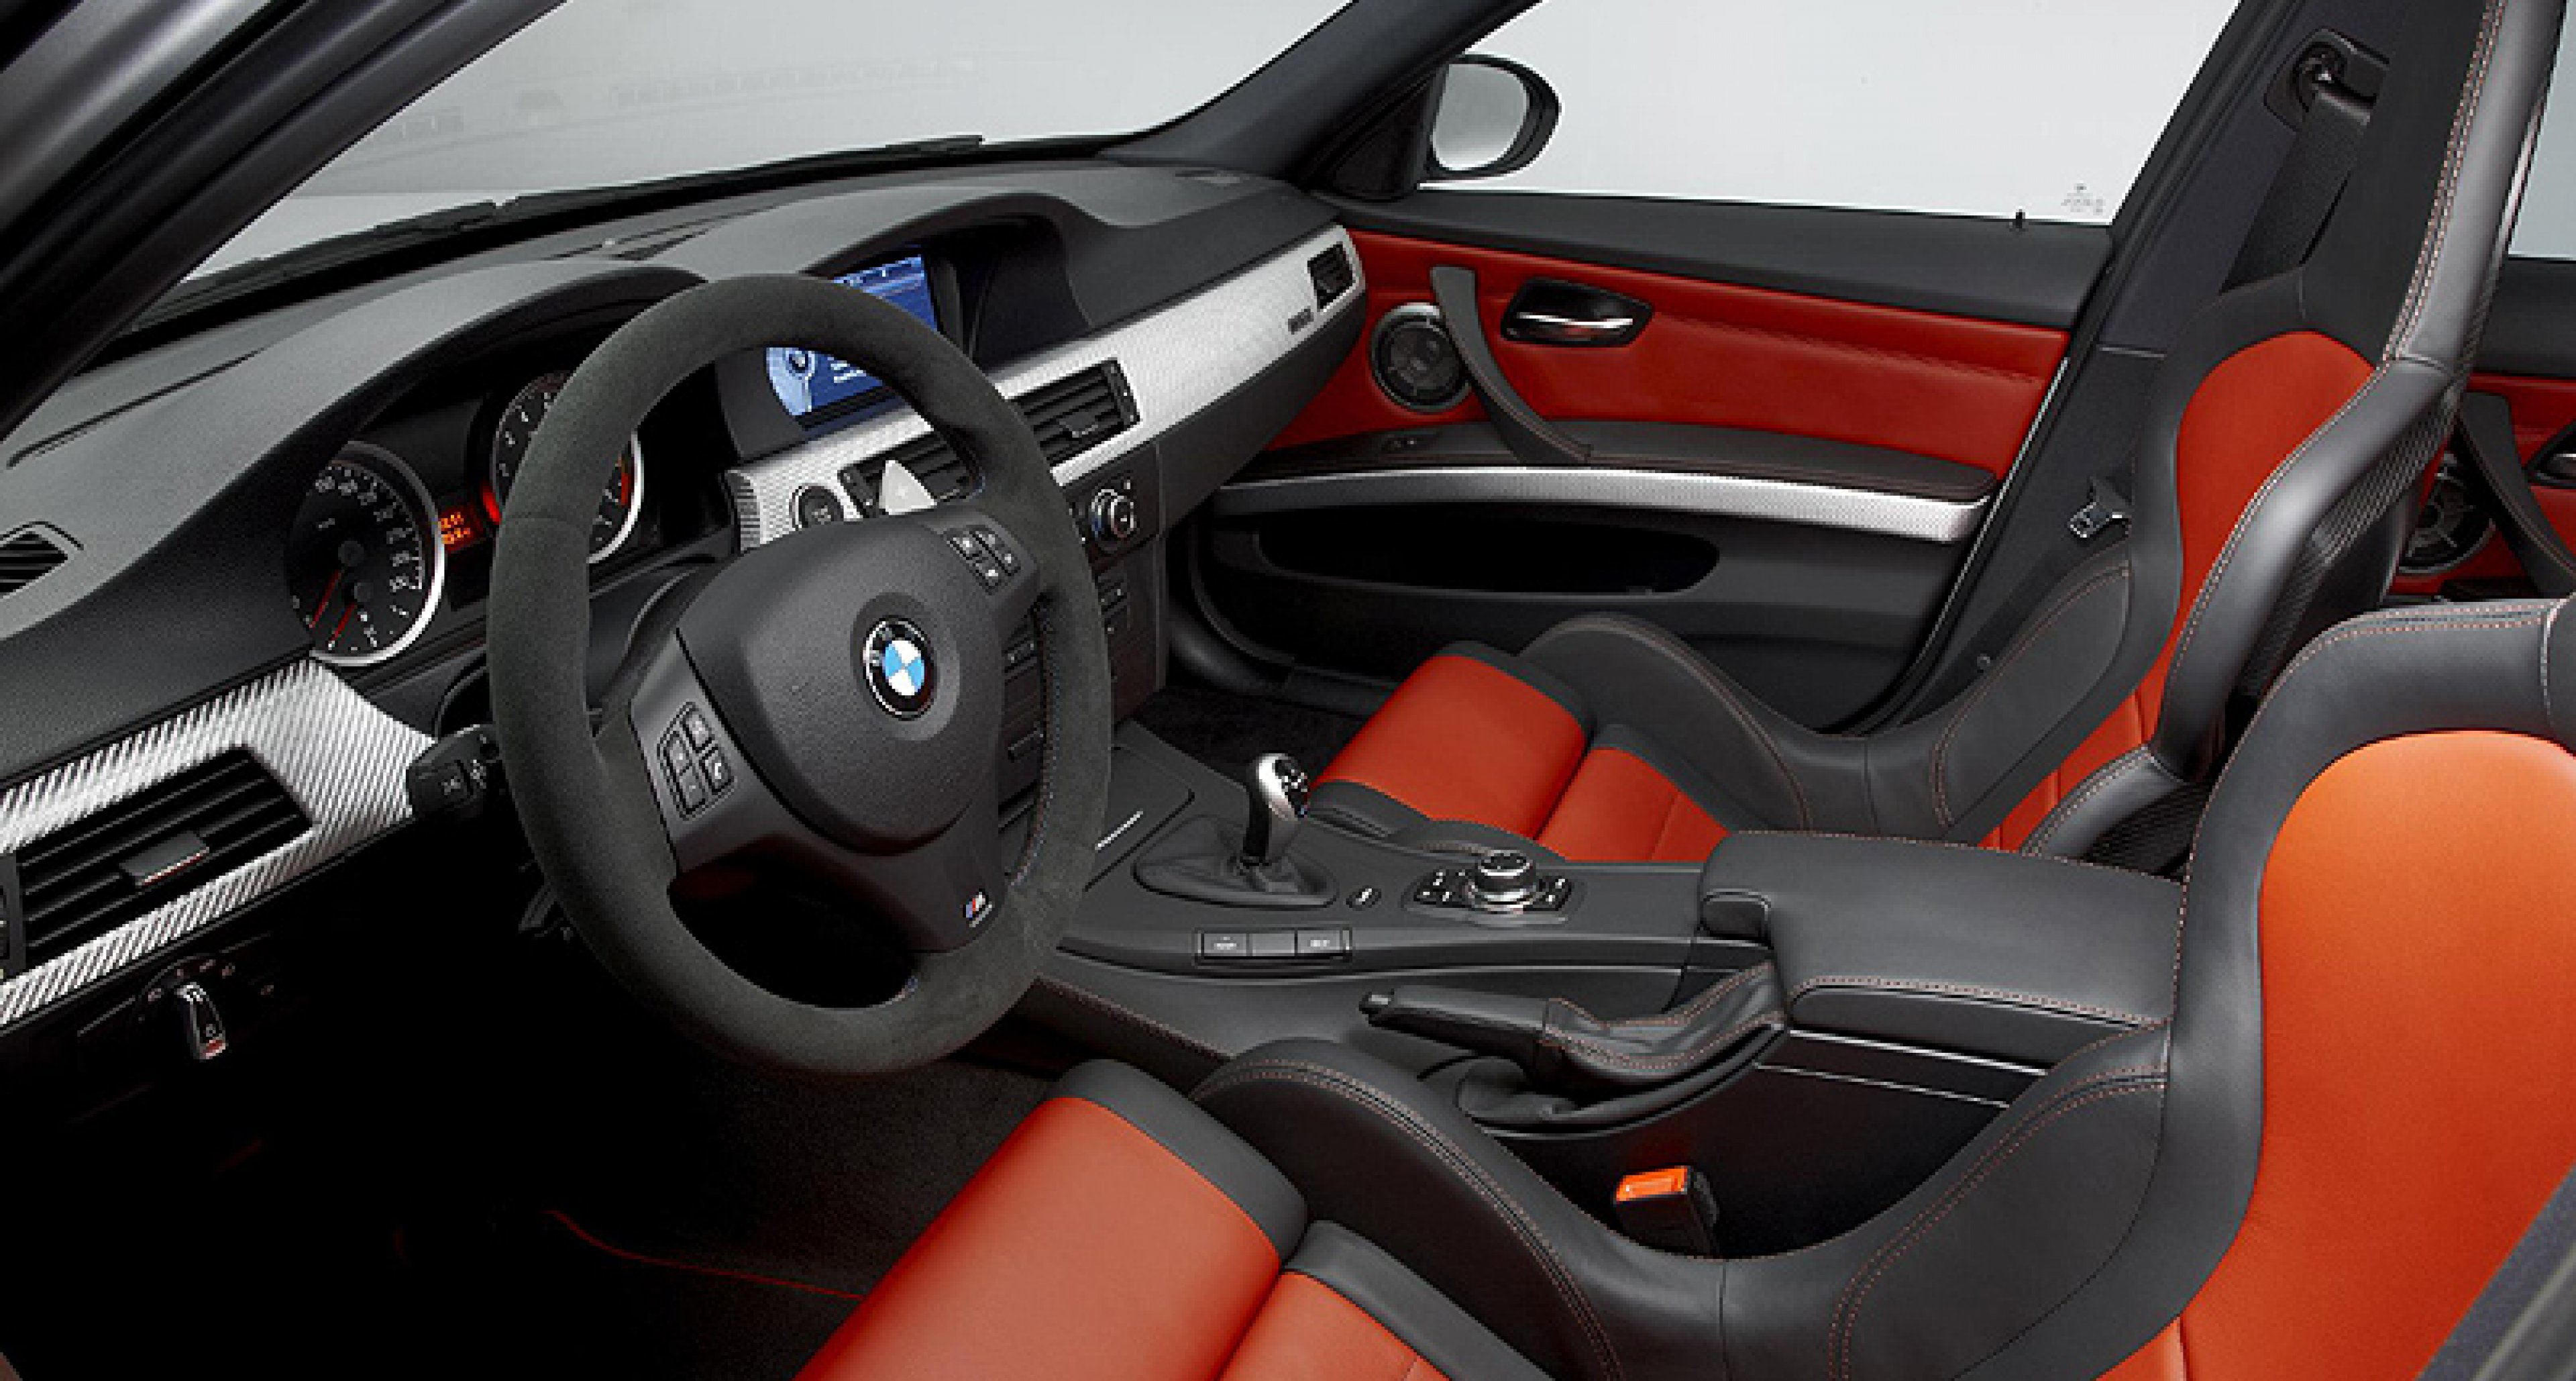 BMW M3 CRT: ultra-lightweight design